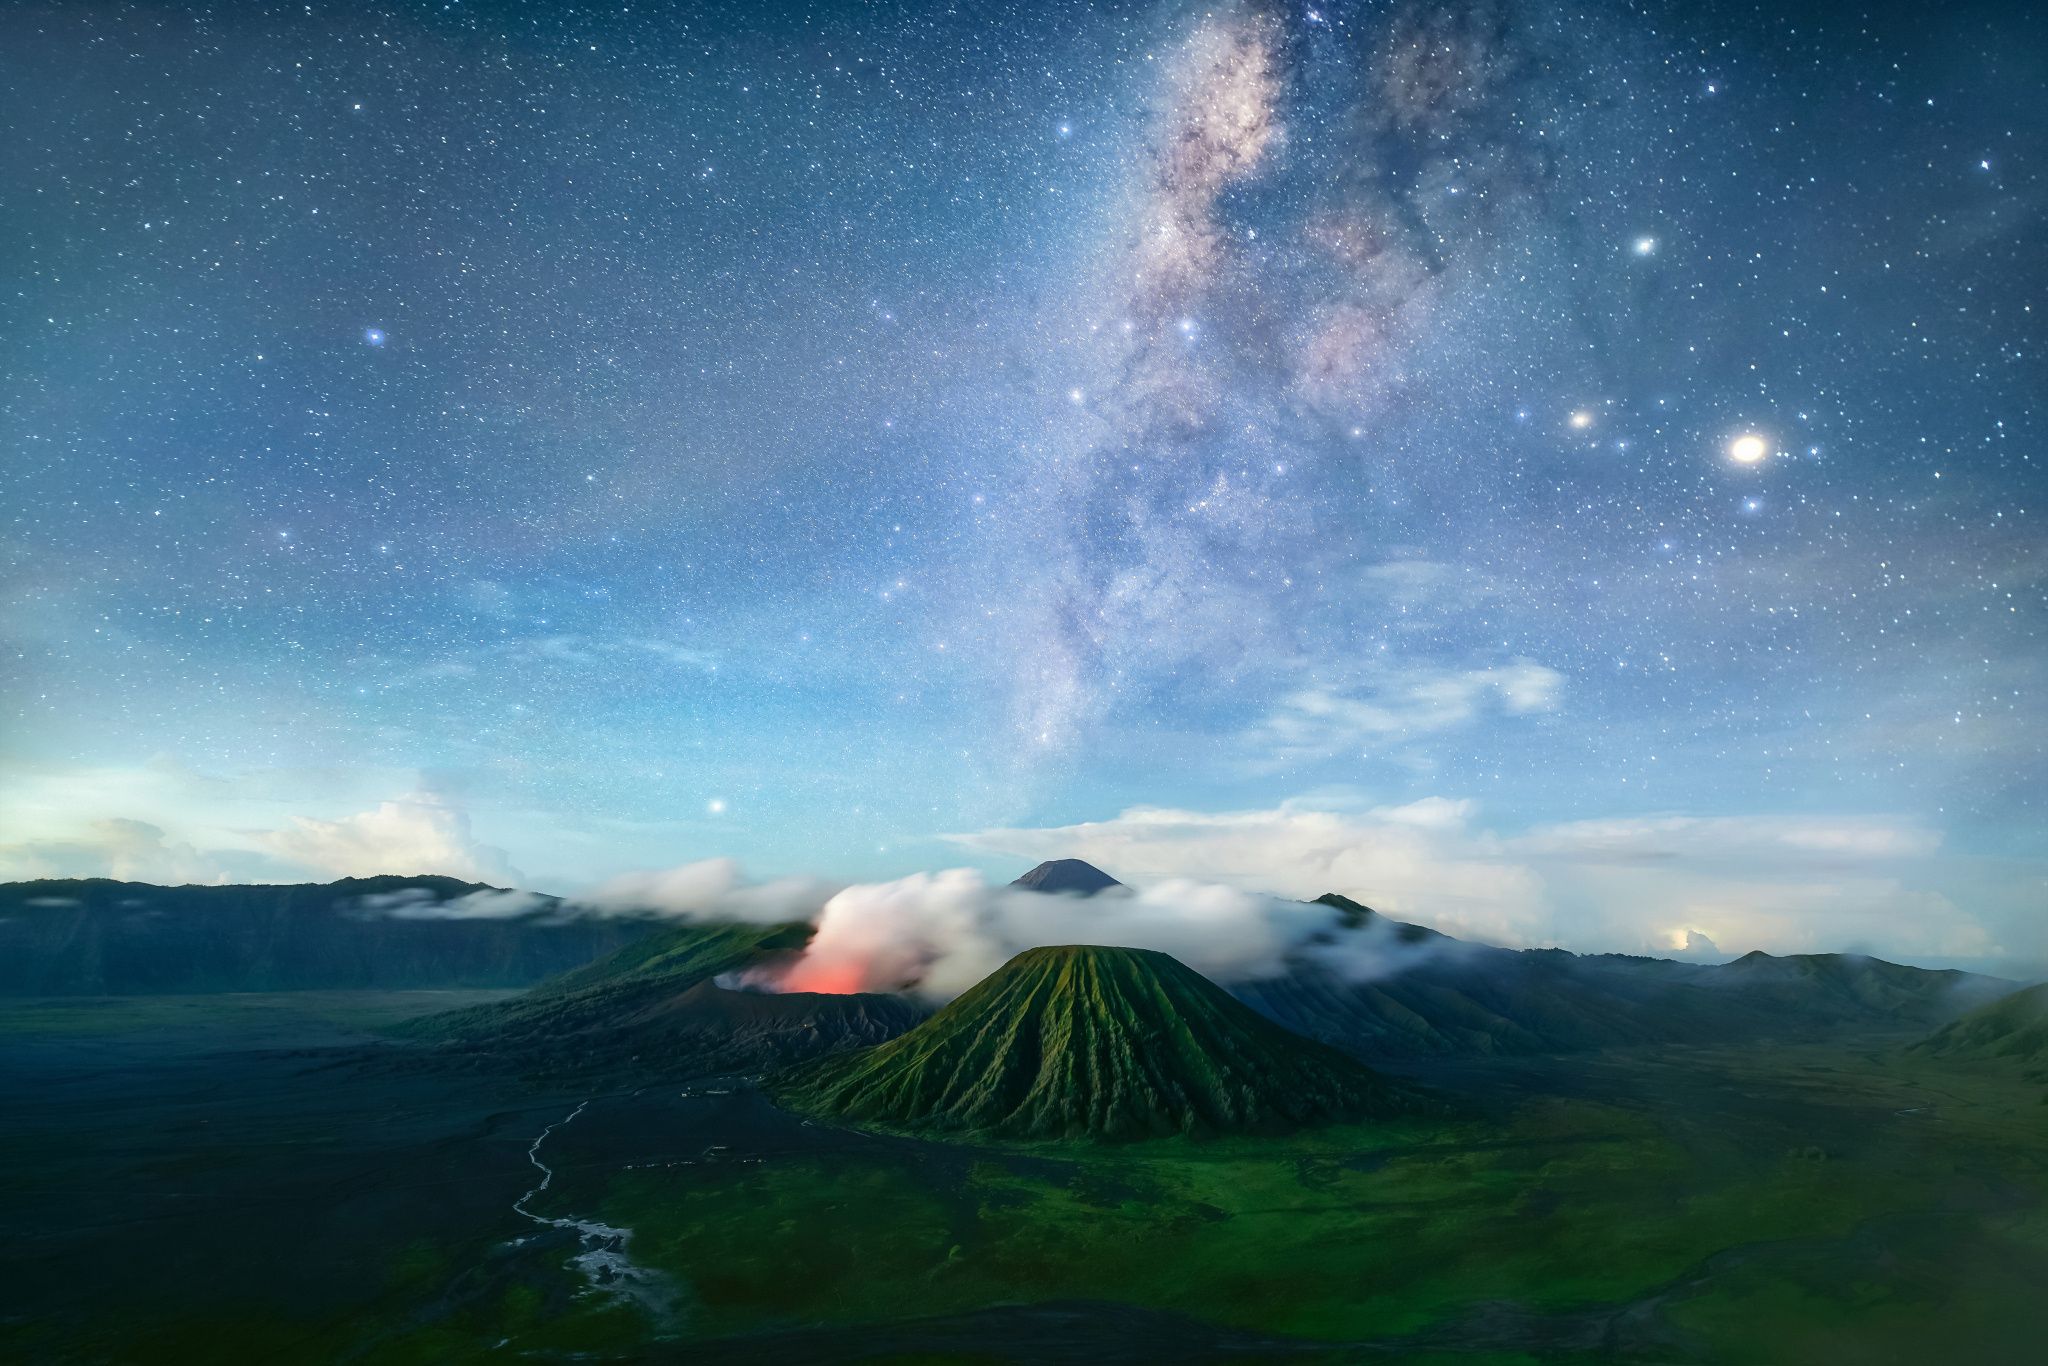 Wallpaper bromo volcano java tenger night milky way 2048x1366